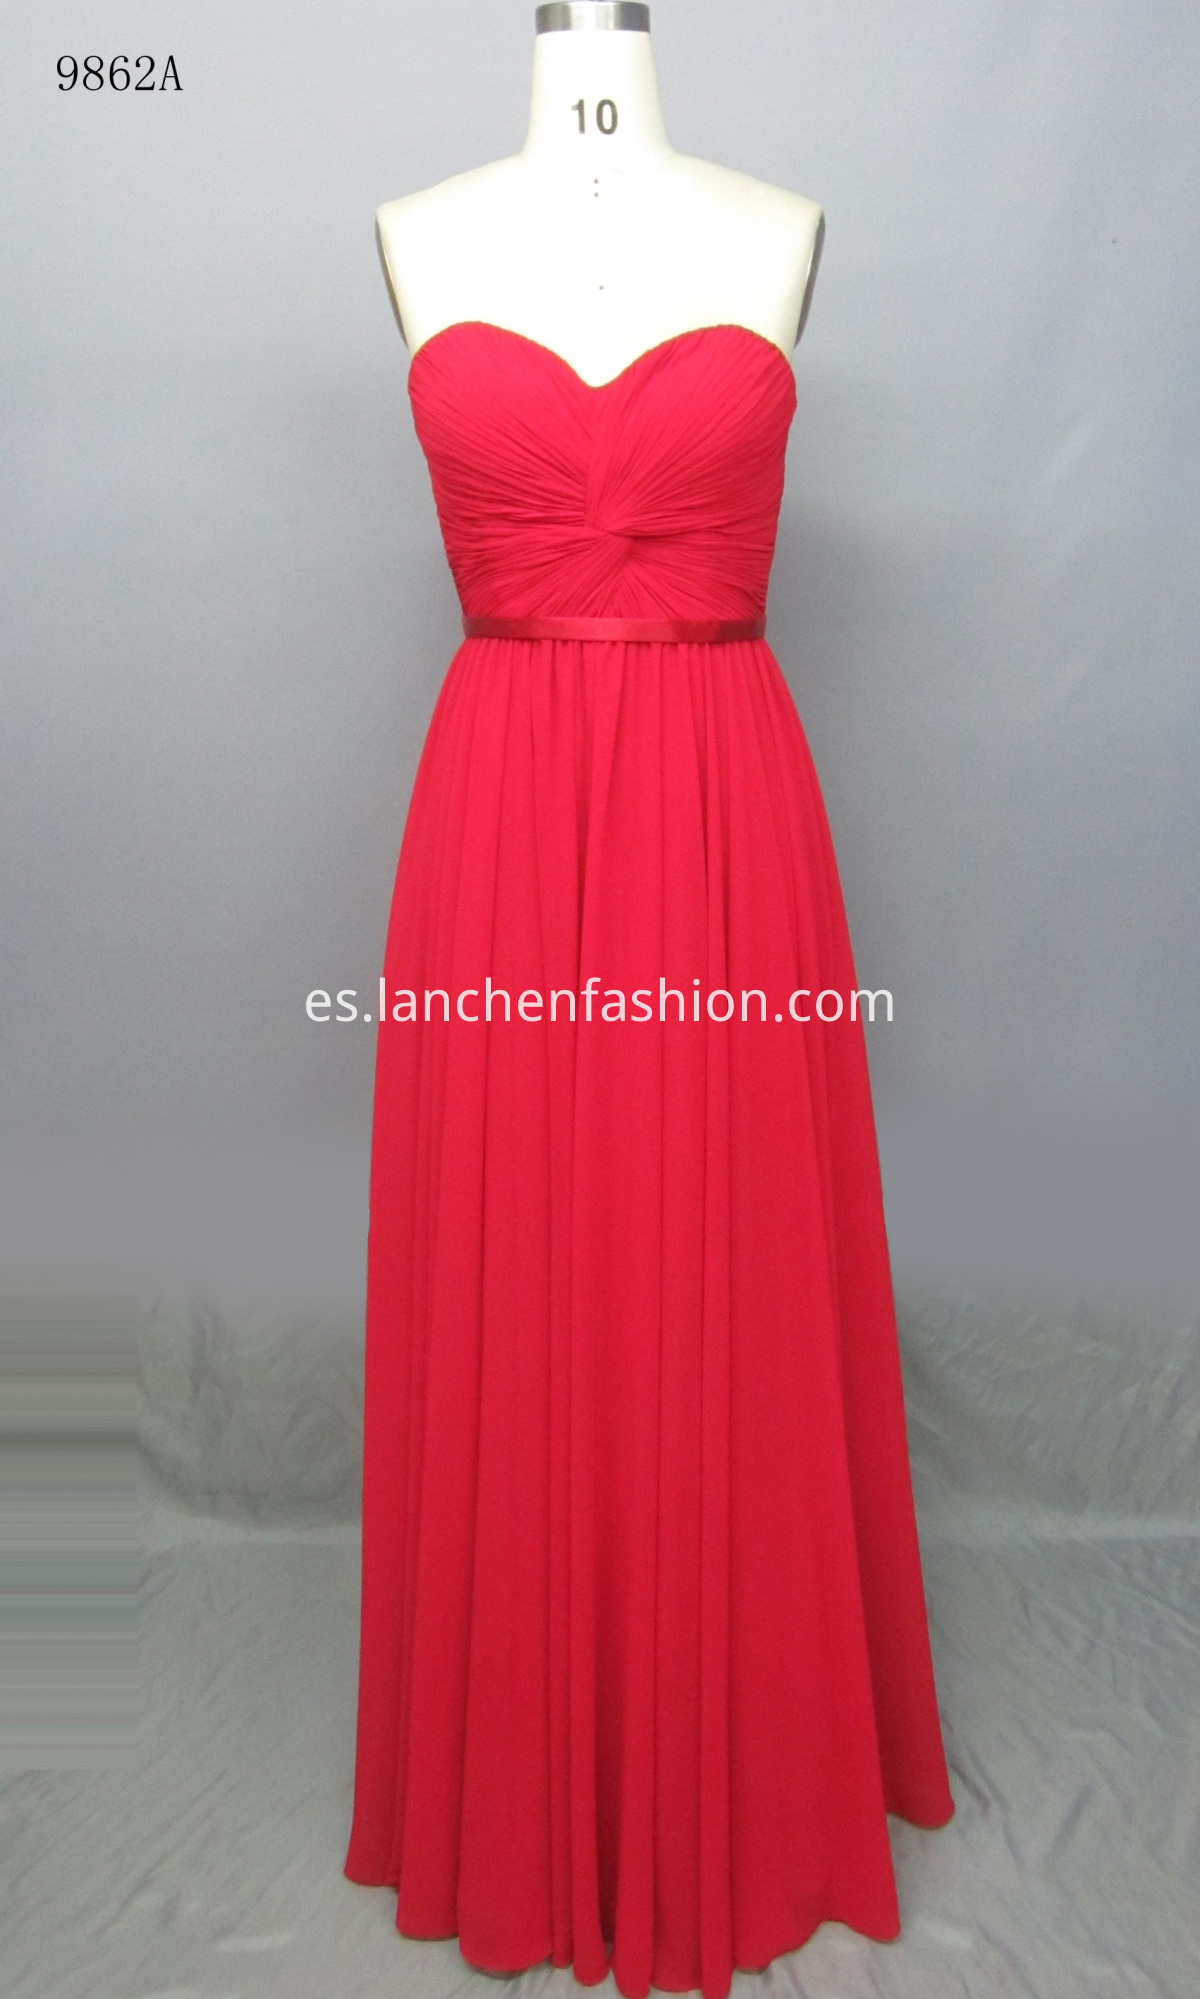 Lace Decoration Dress RED